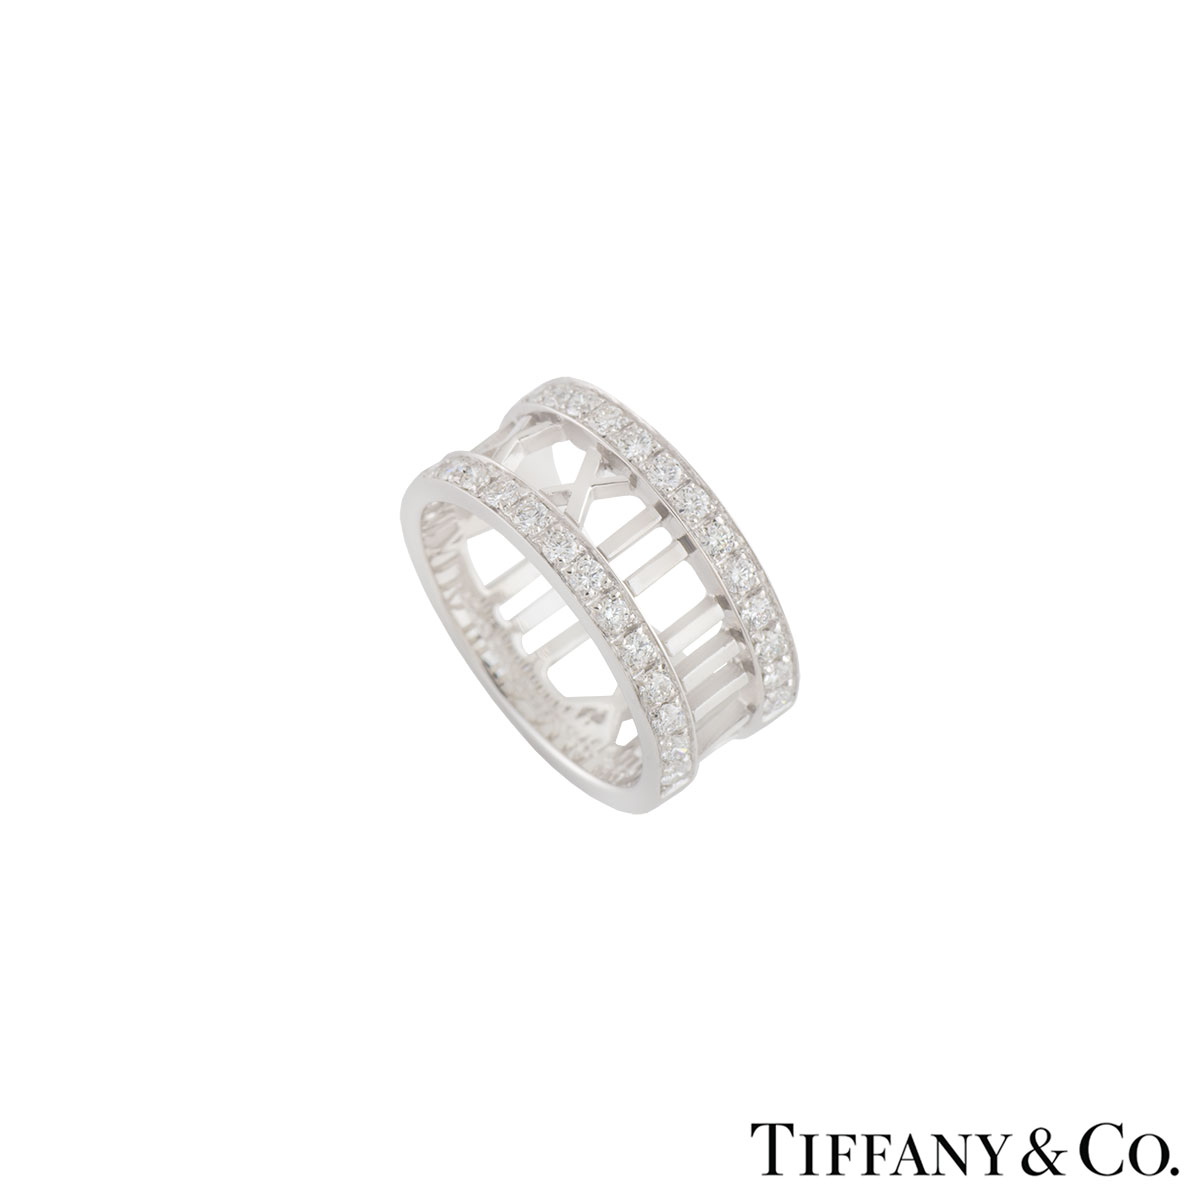 Tiffany & Co. White Gold Diamond Atlas Ring 0.75ct G+/VS+